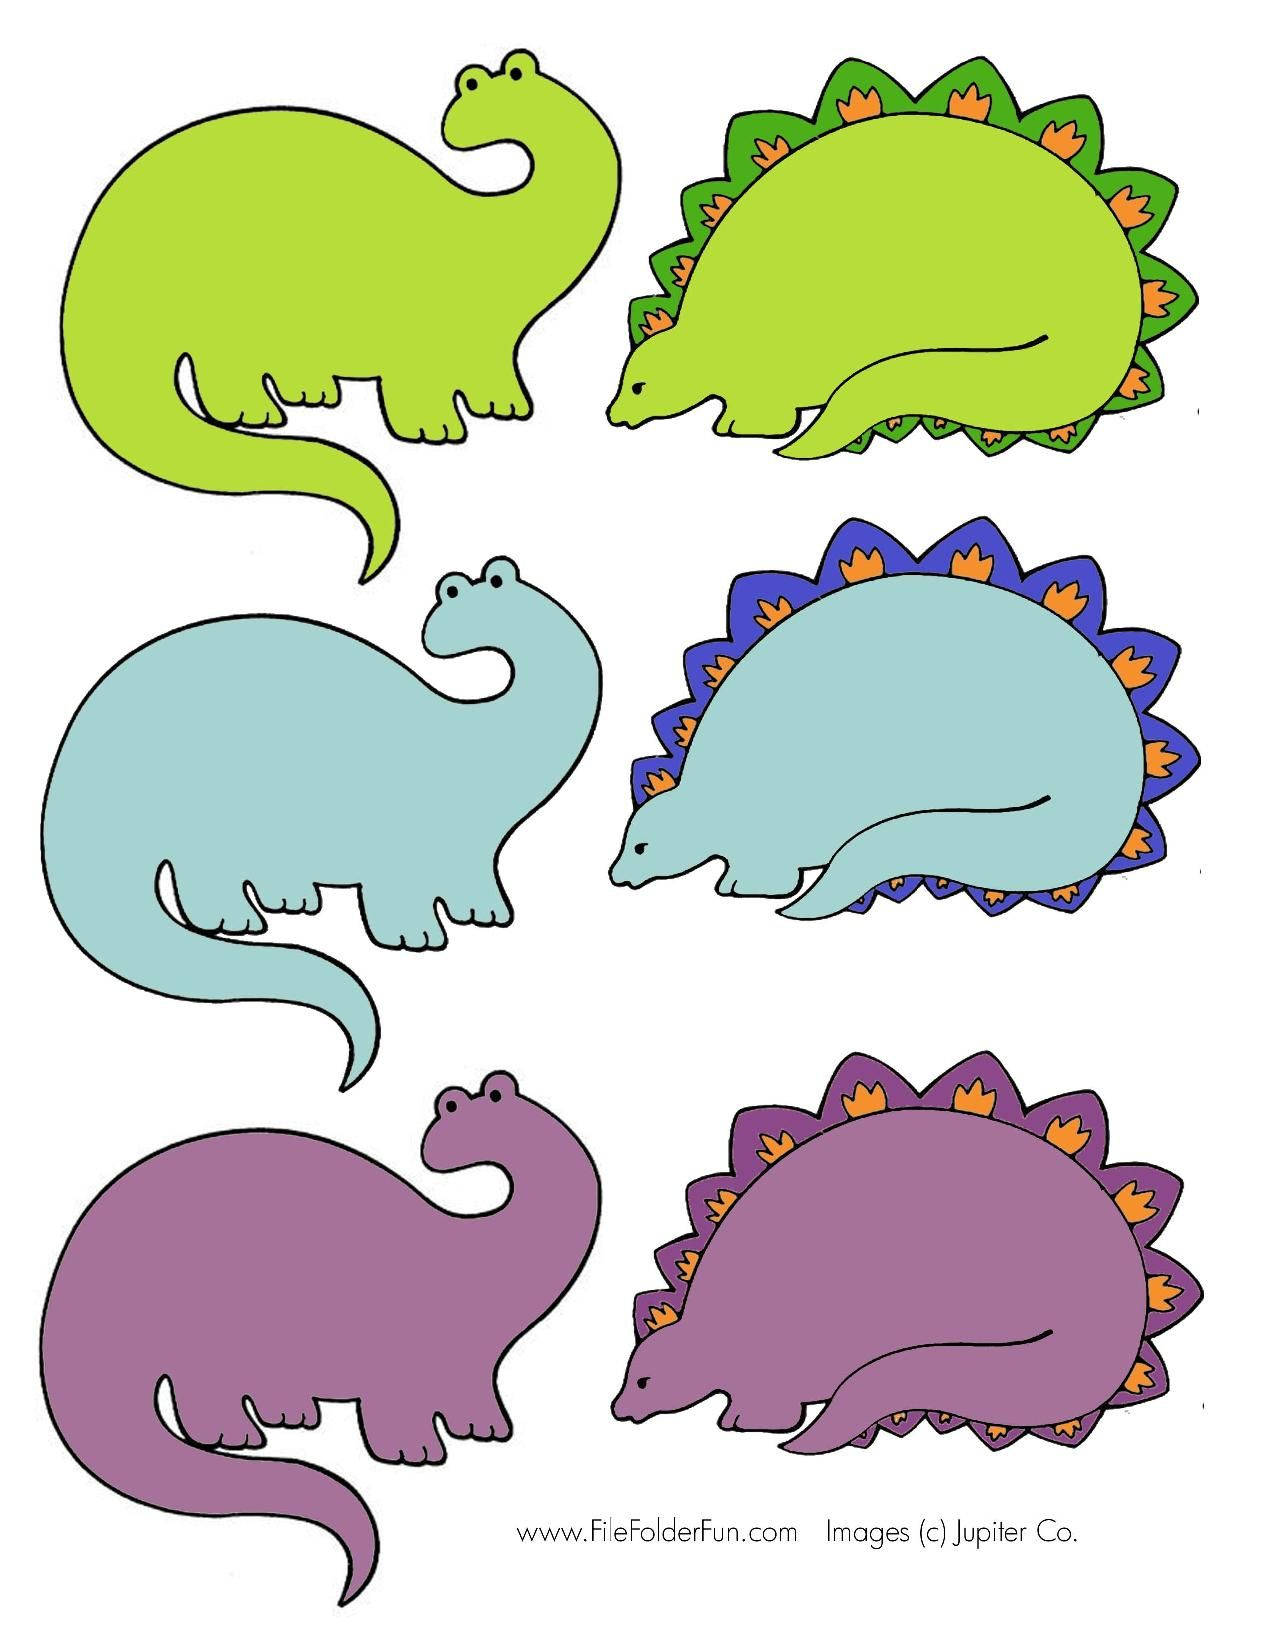 Unit study colors preschool - Dinosaur Colors Memory Preschool Dinosaurdinosaur Activitiesdinosaur